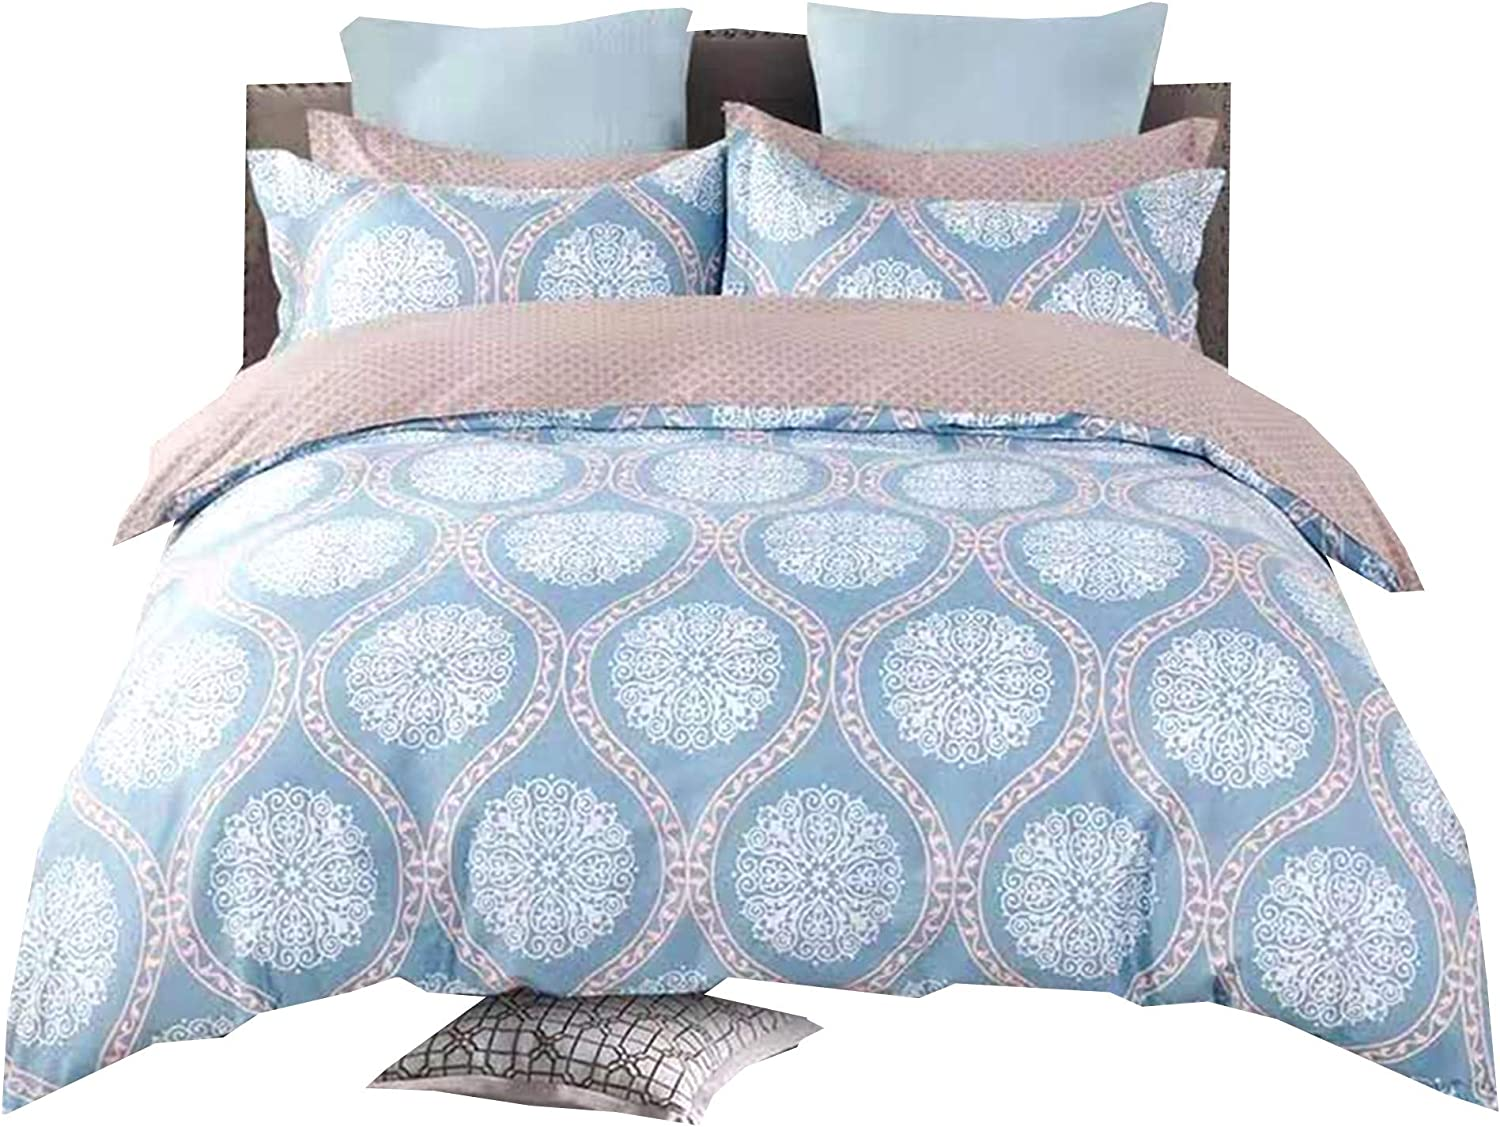 WBYCOTBED Men Duvet Cover Full Size Blue Bedding Co Chicago Mall Cotton 35% OFF 100%